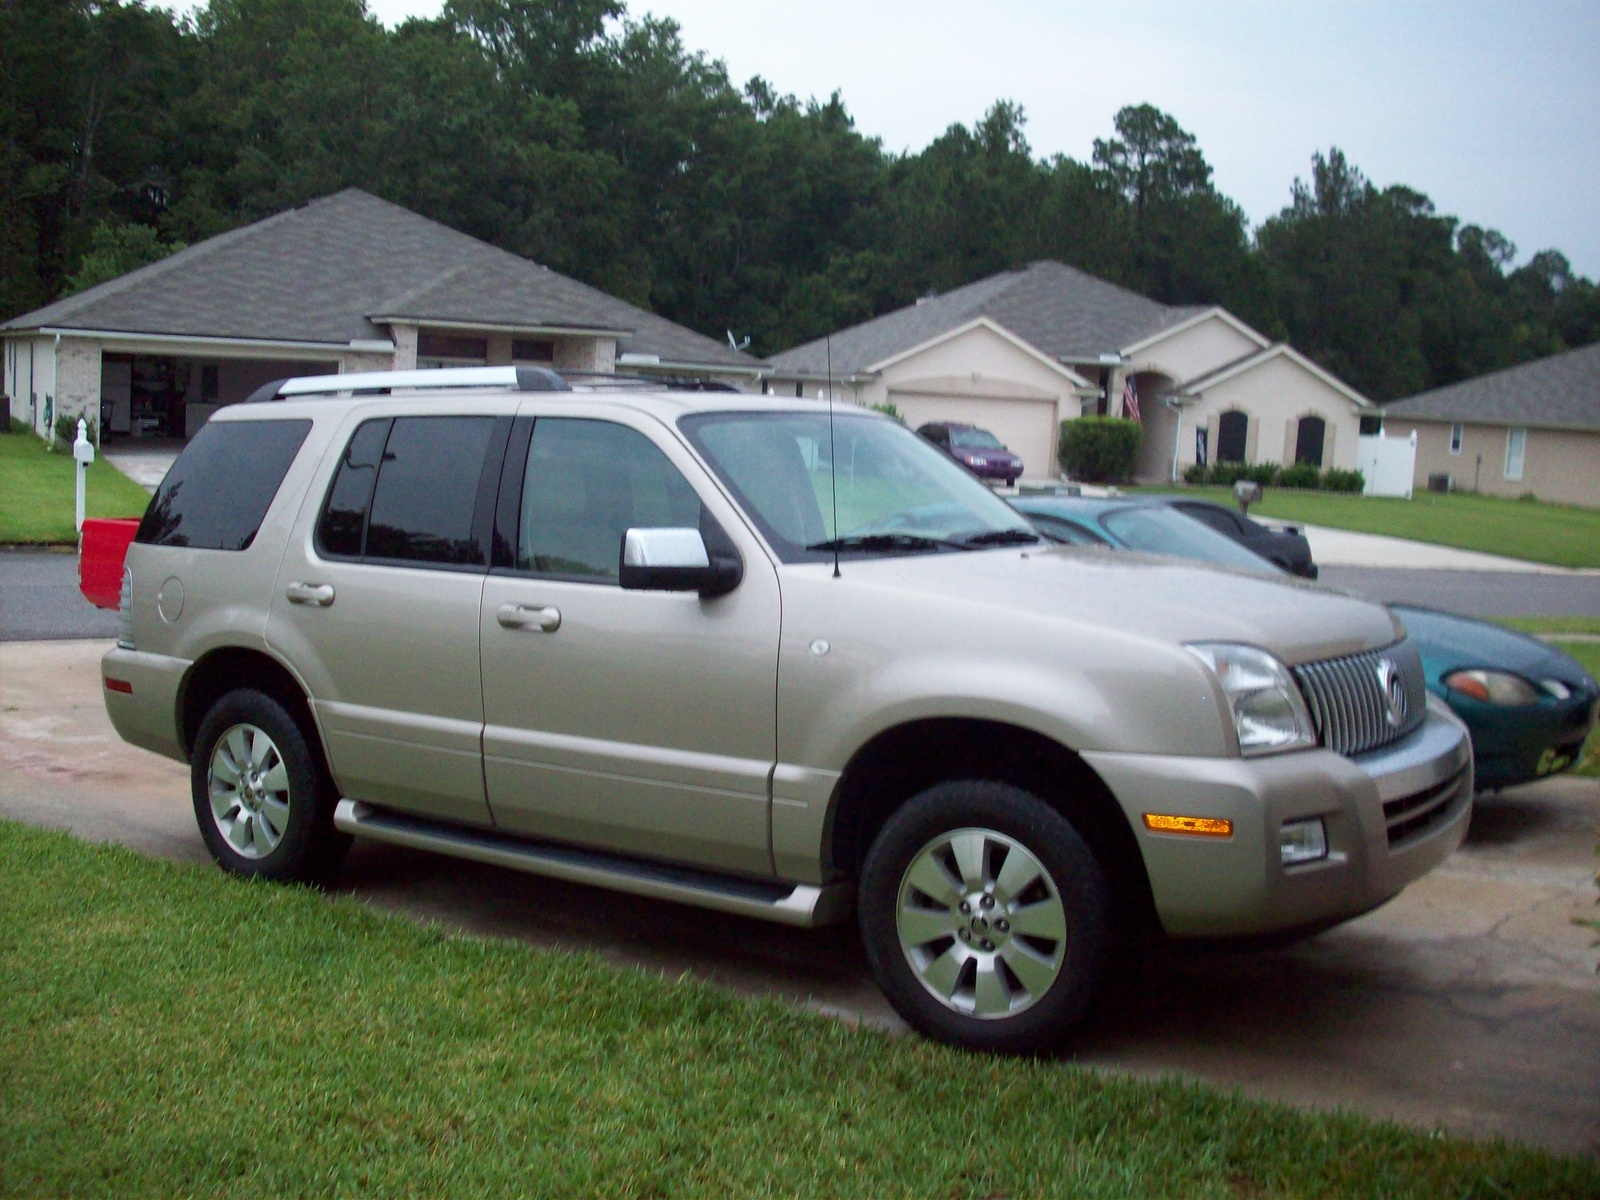 2006 Mercury Mountaineer Premier AWD picture, exterior